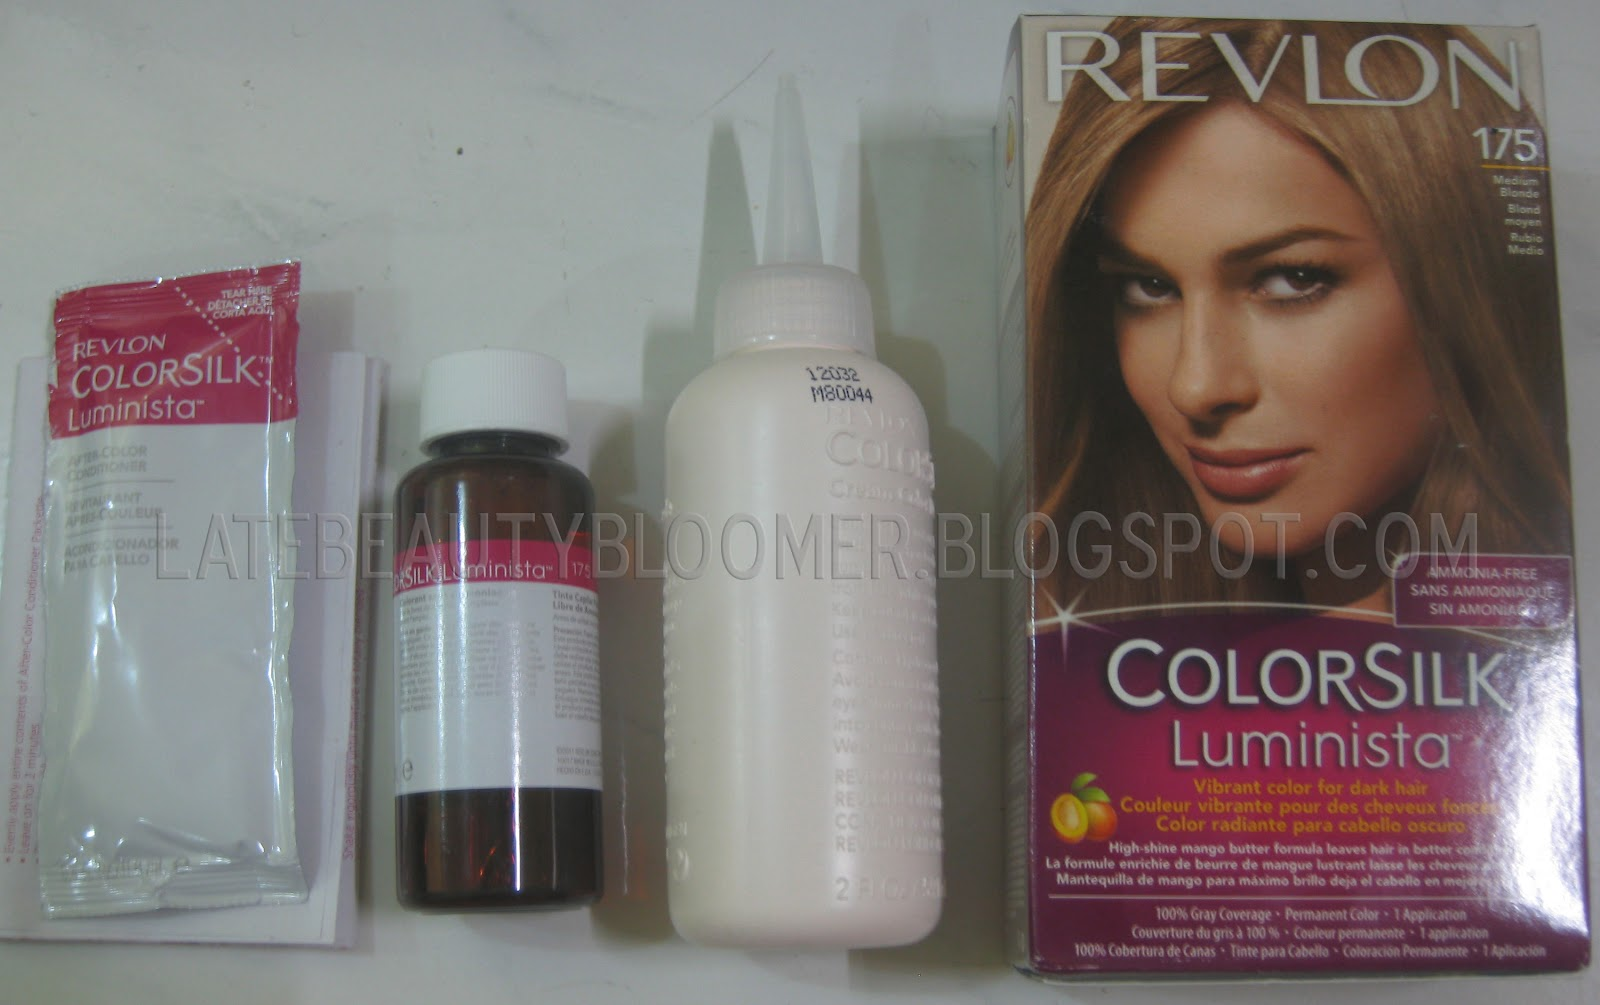 Shays Lifestyle Diary Revlon Colorsilk Luminista In Medium Blonde